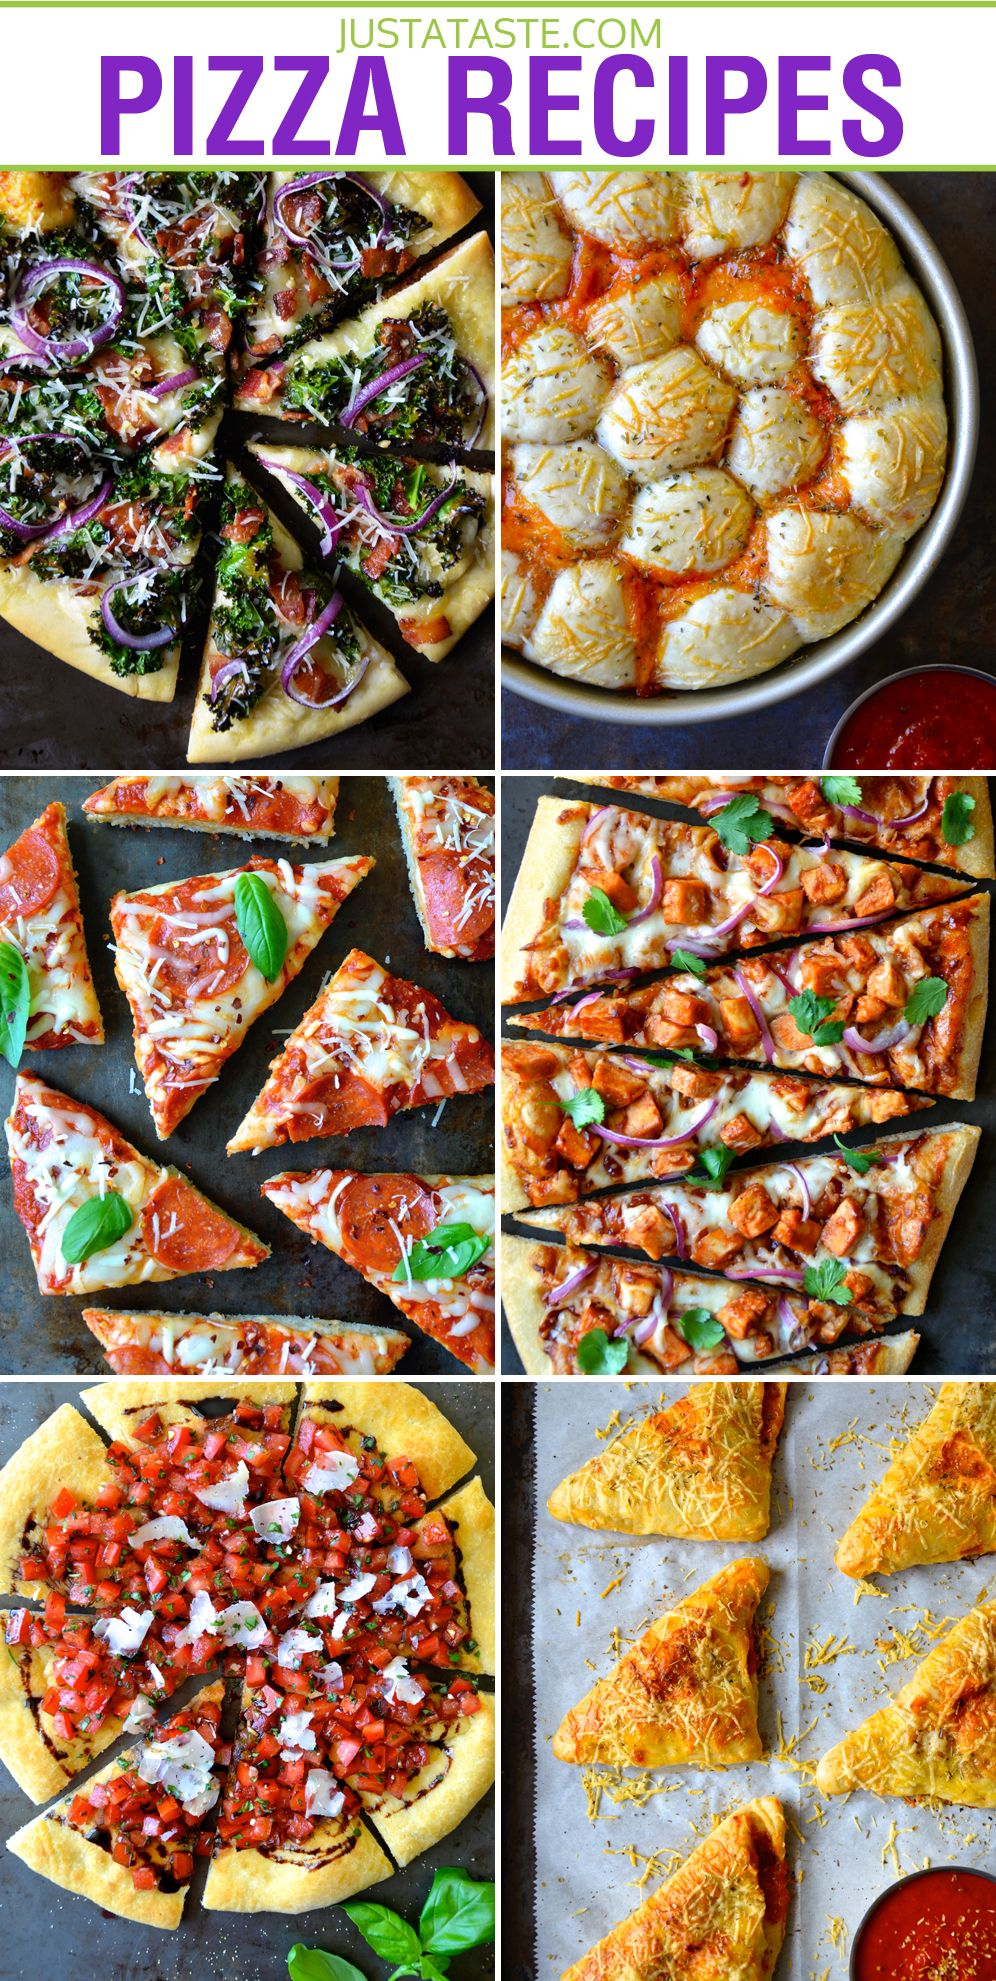 The Best Homemade Pizza Recipes On Justataste Com Recipe Pizza Recipes Homemade Best Homemade Pizza Homemade Pizza